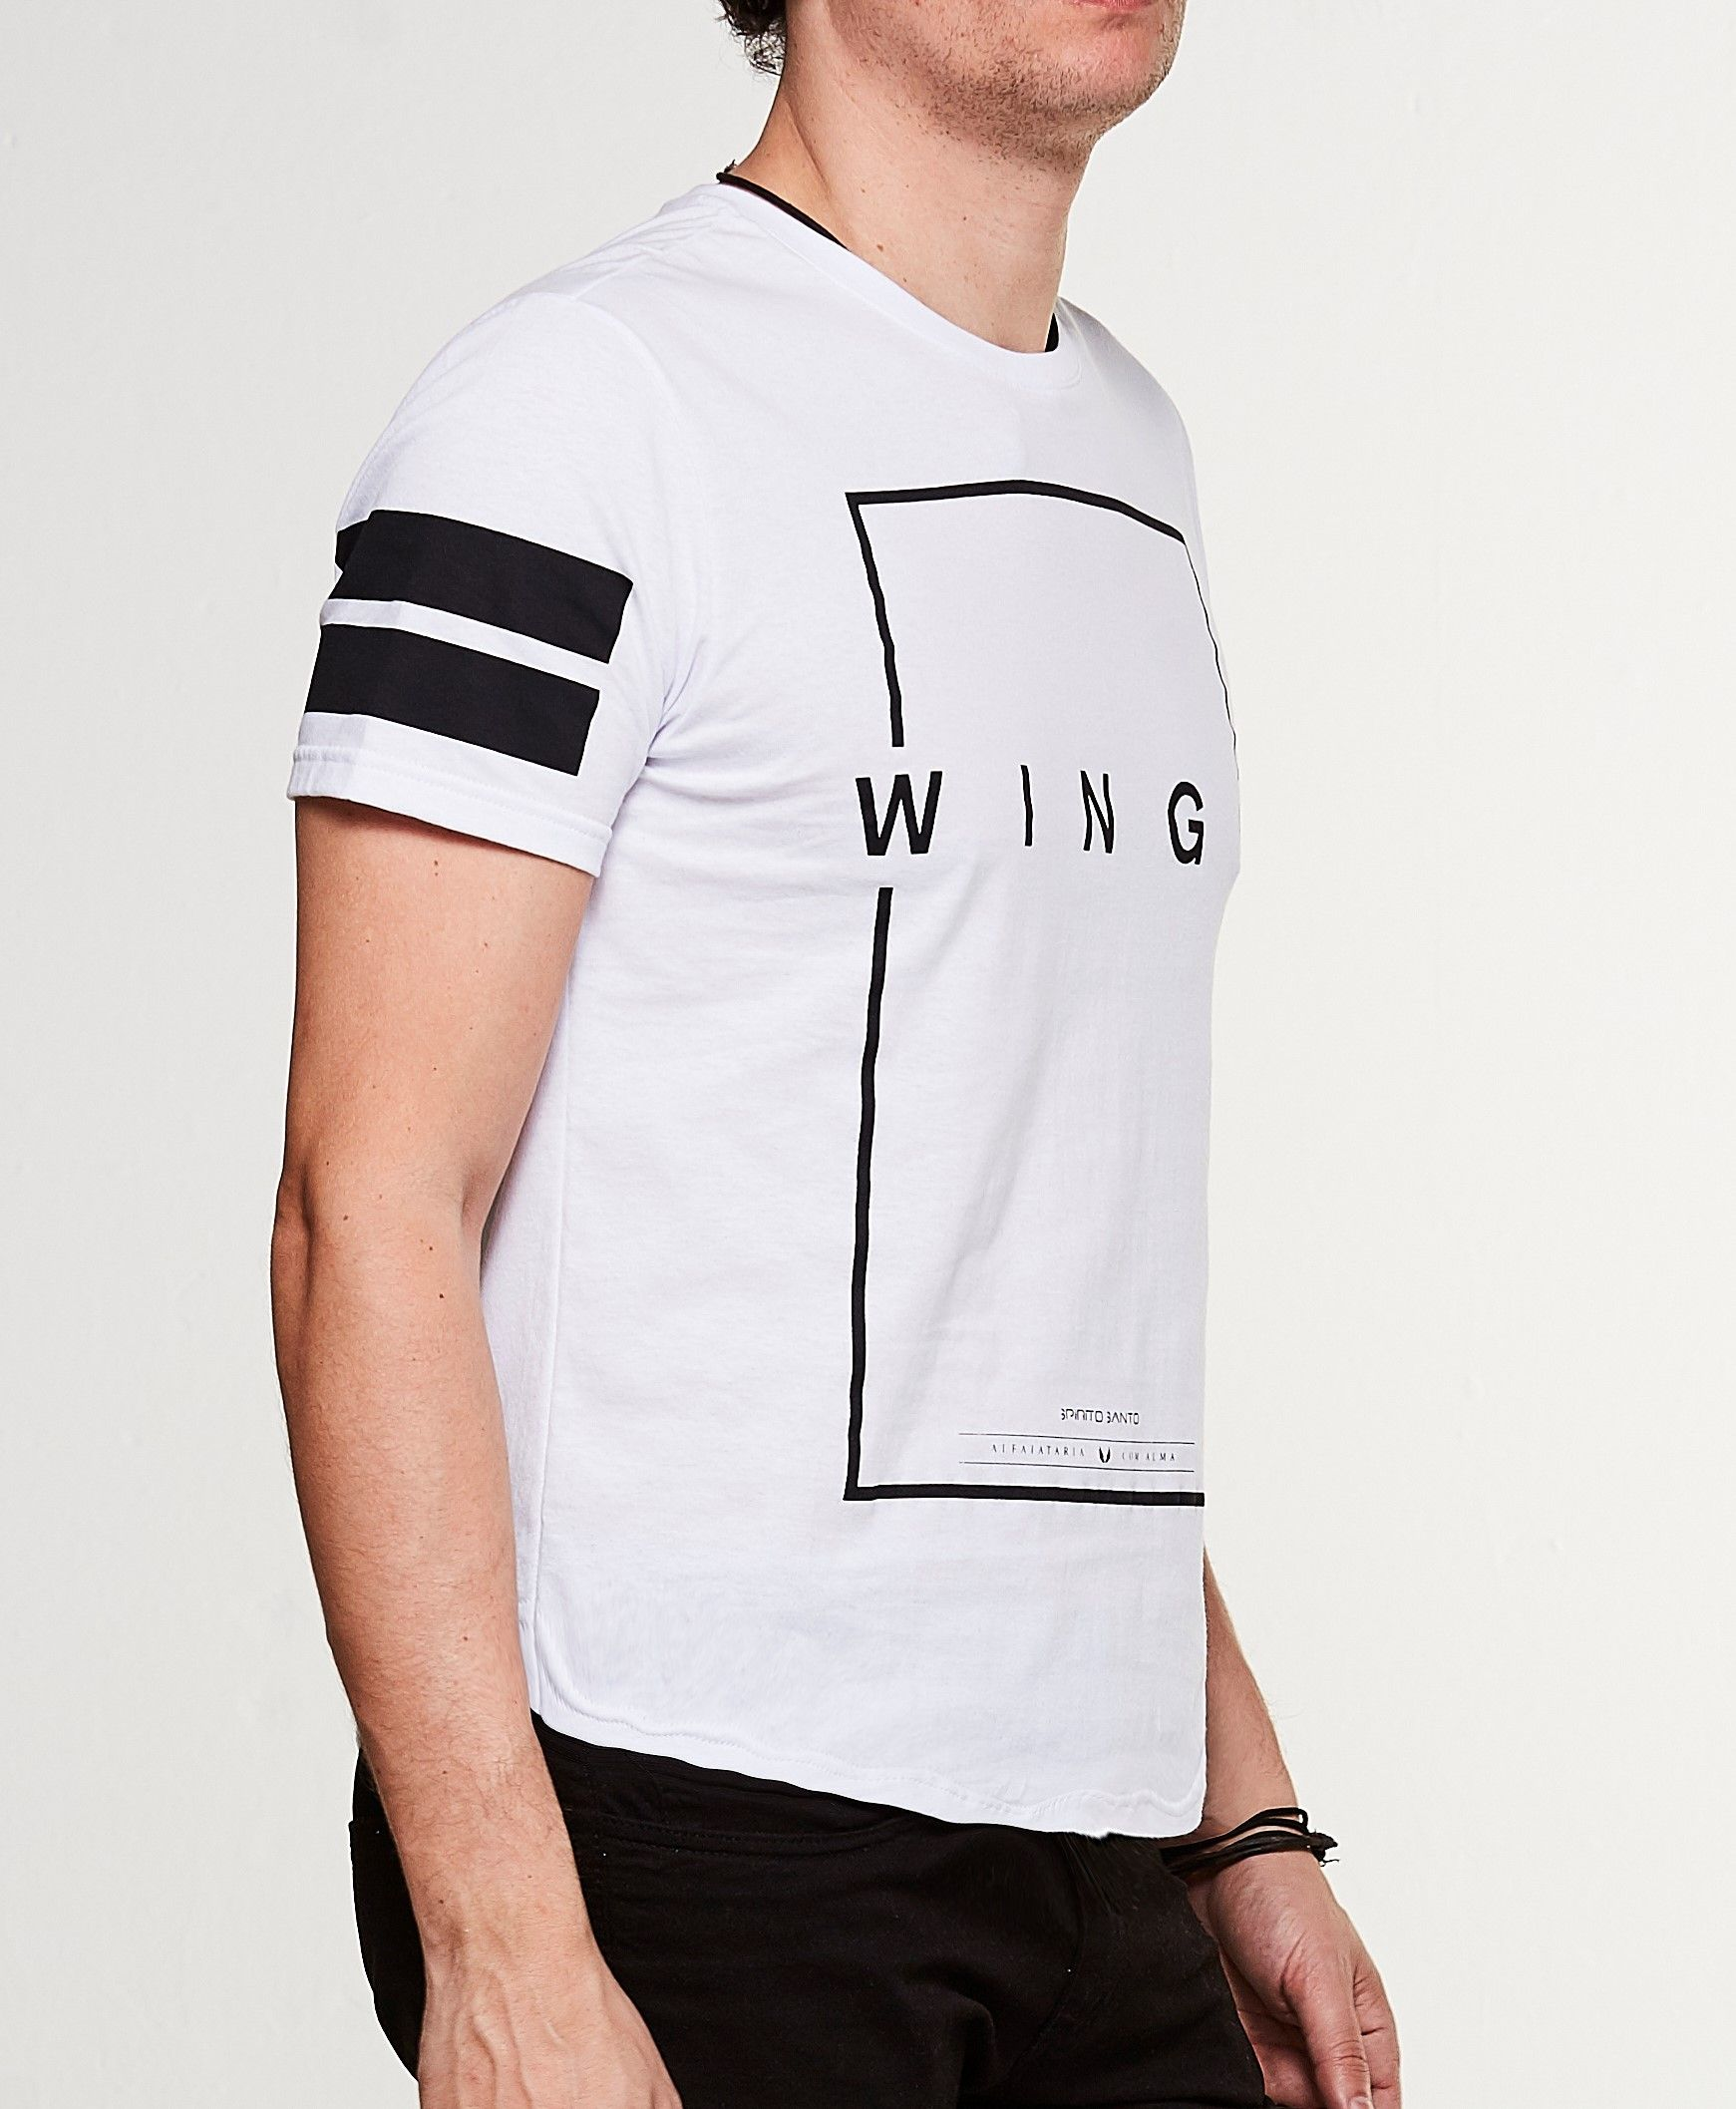 CAMISETA WINGS Branco SPIRITO SANTO